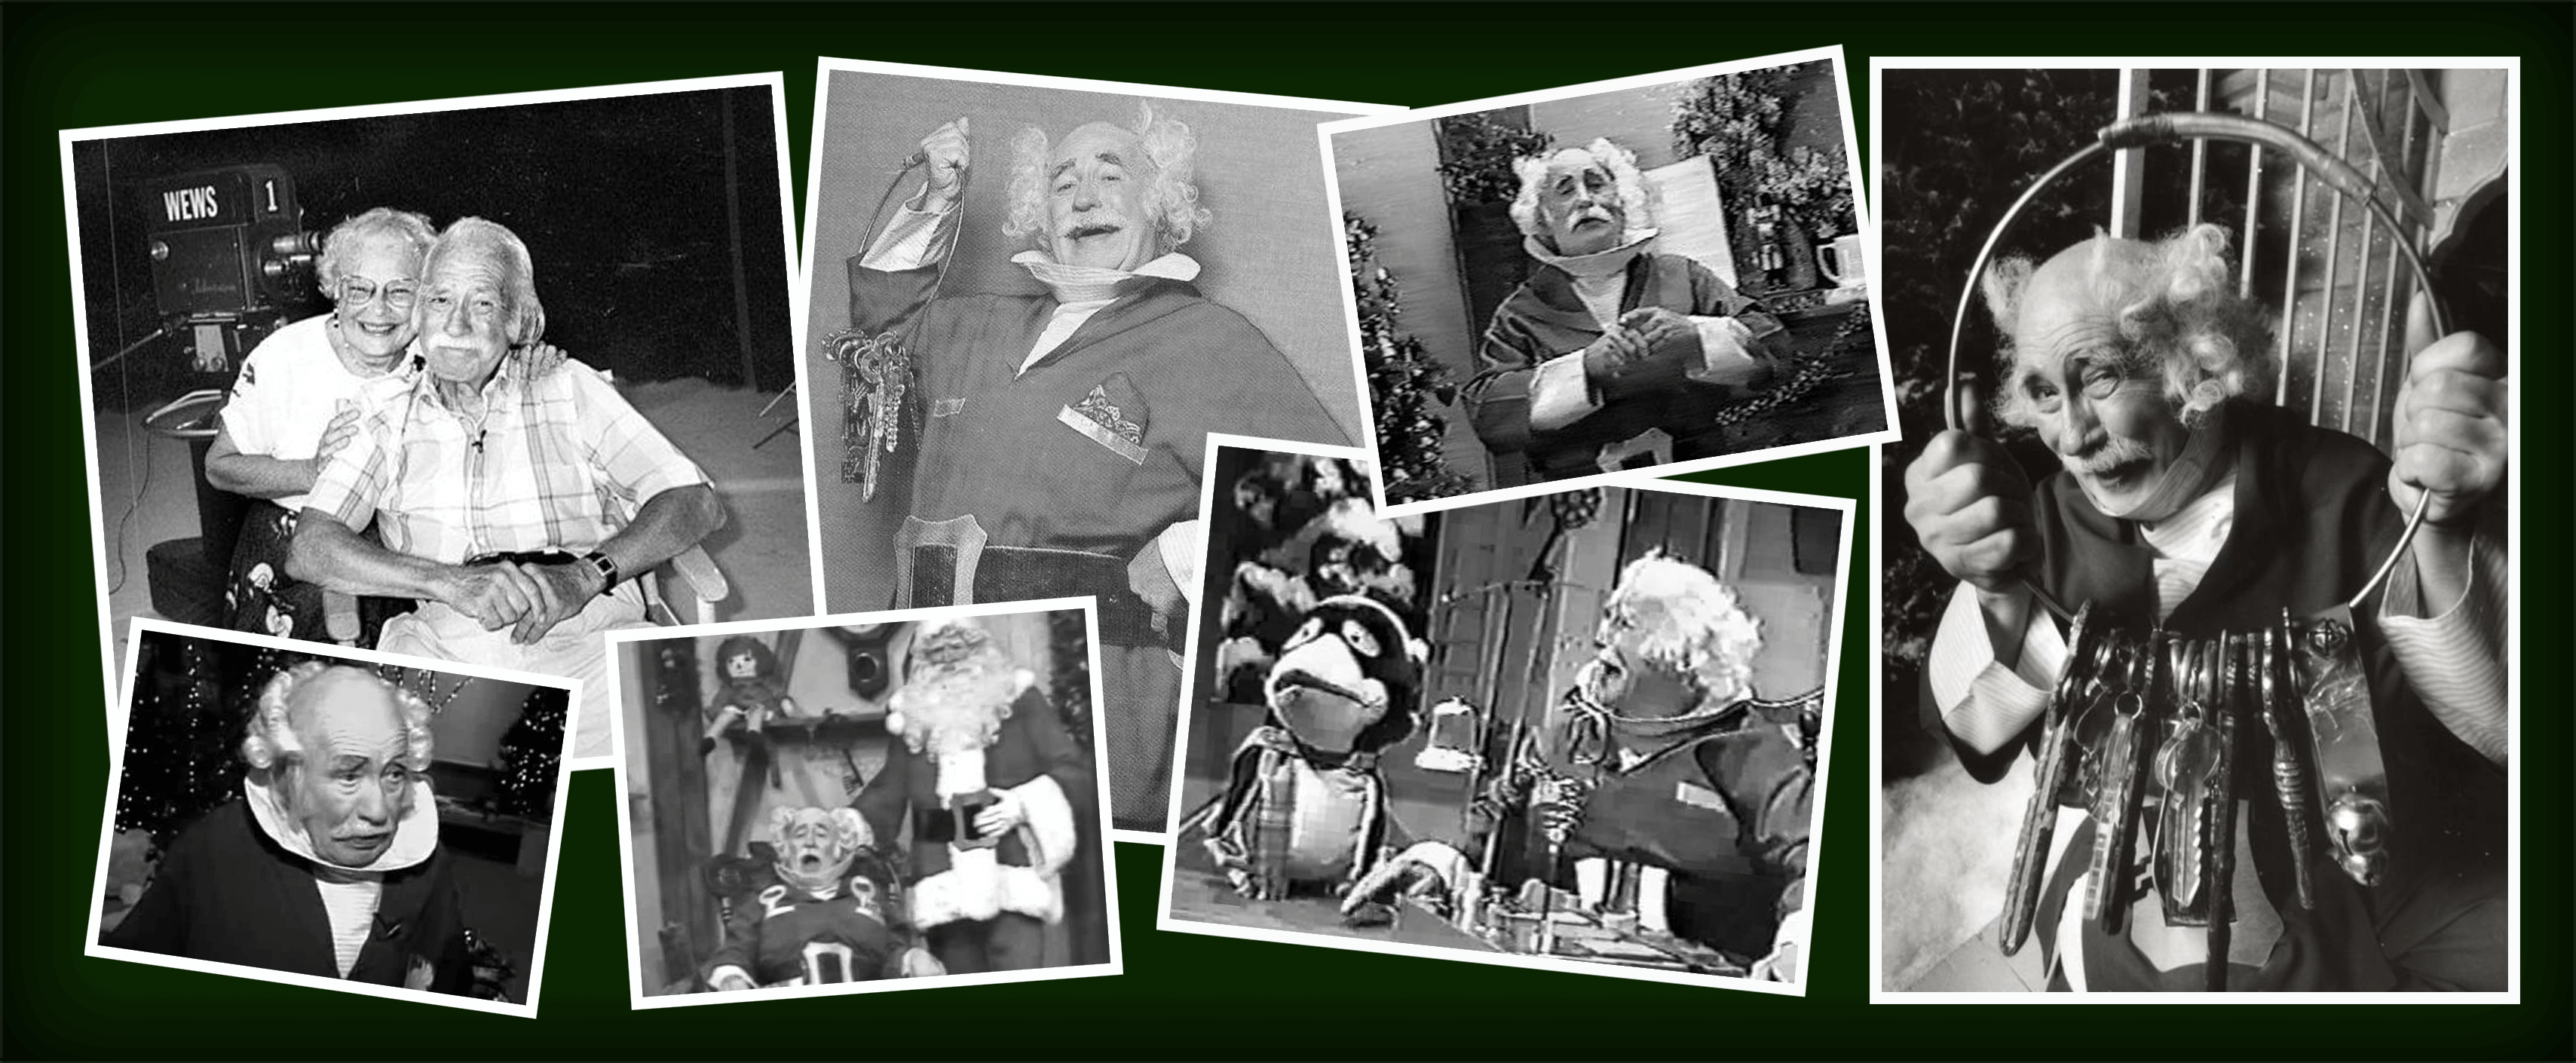 Photos of the most famous Mr. Jingeling, Earl Keyes, in Cleveland, Ohio.